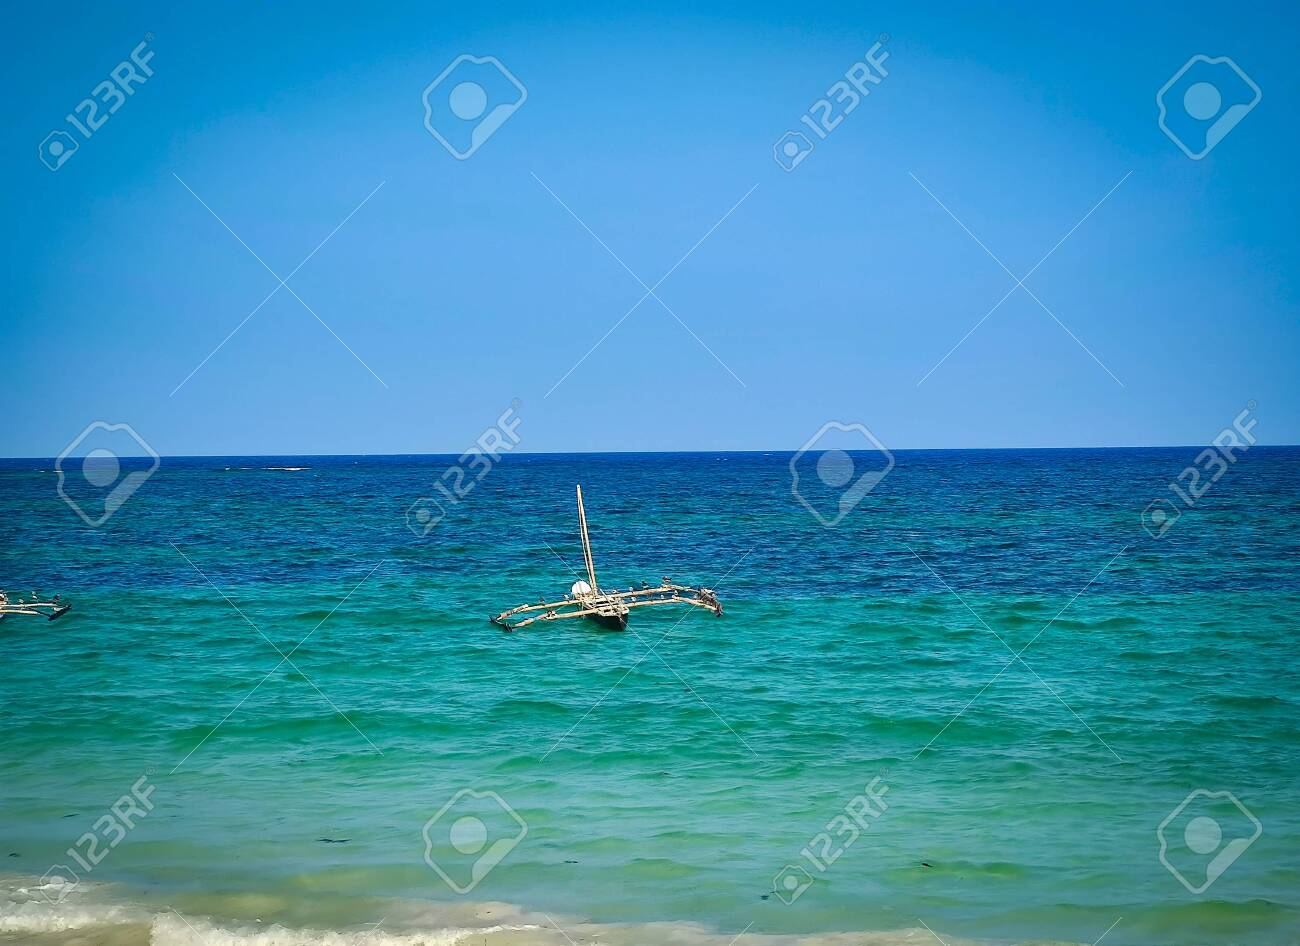 Typical Swahili wooden canoe on the sea at Diani beach, Kenya. It is a beautiful long beach in Africa. It is a sunny day. - 145110065